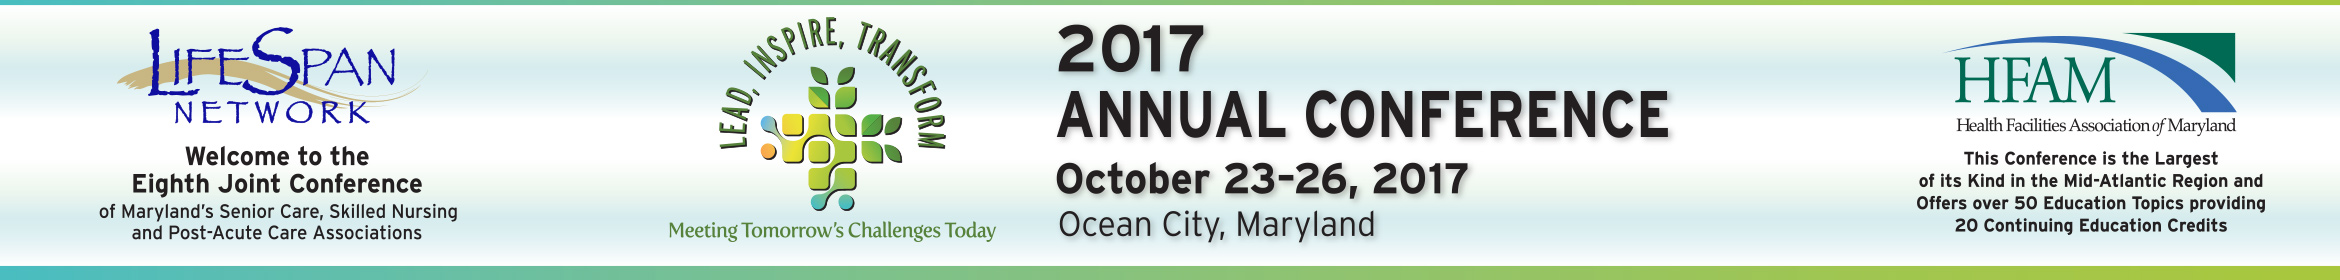 2017 LifeSpan/HFAM Joint Conference Main banner